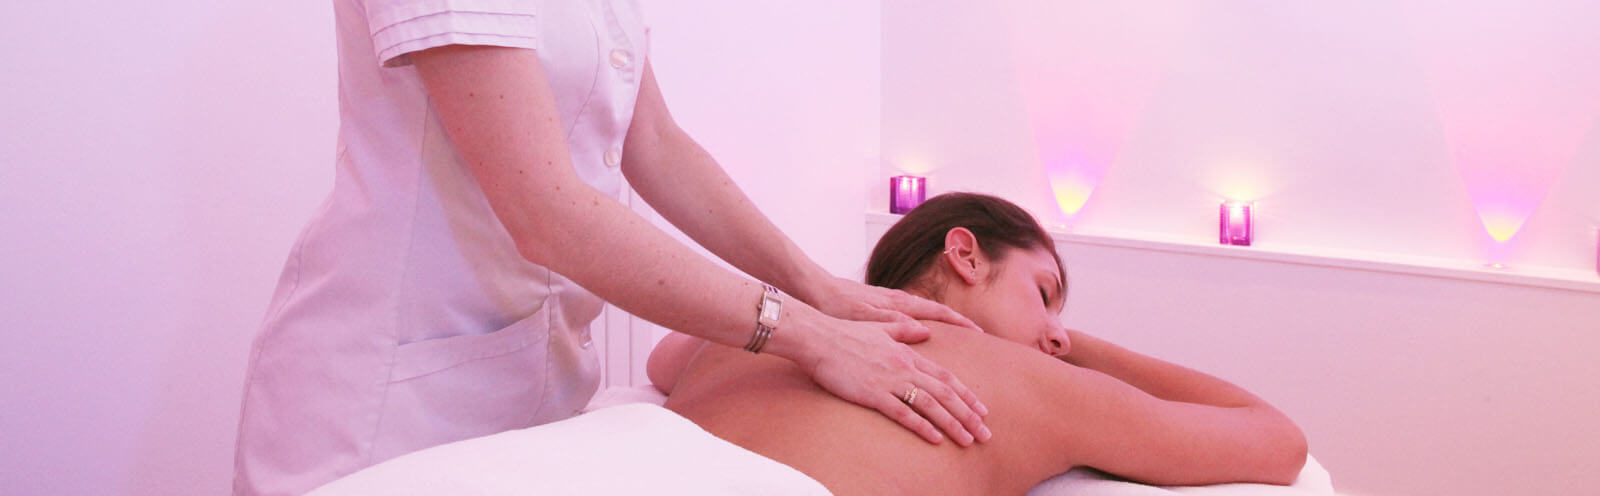 Massage et relaxation